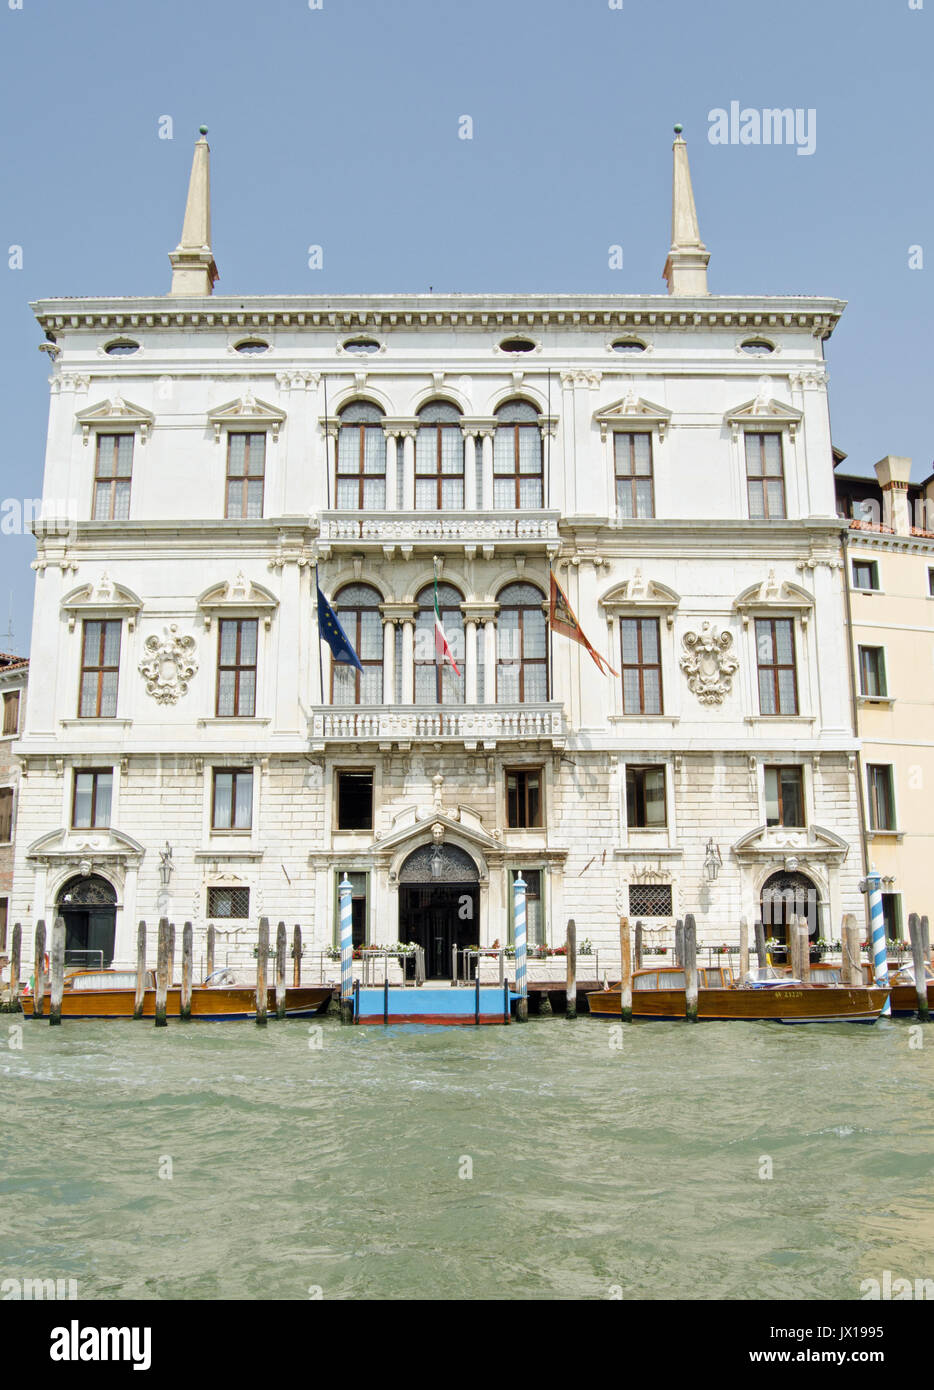 The magnificent Palazzo Balbi overlooking the Grand Canal in Venice.  Now home to the President and local government of the Veneto region of Italy. - Stock Image